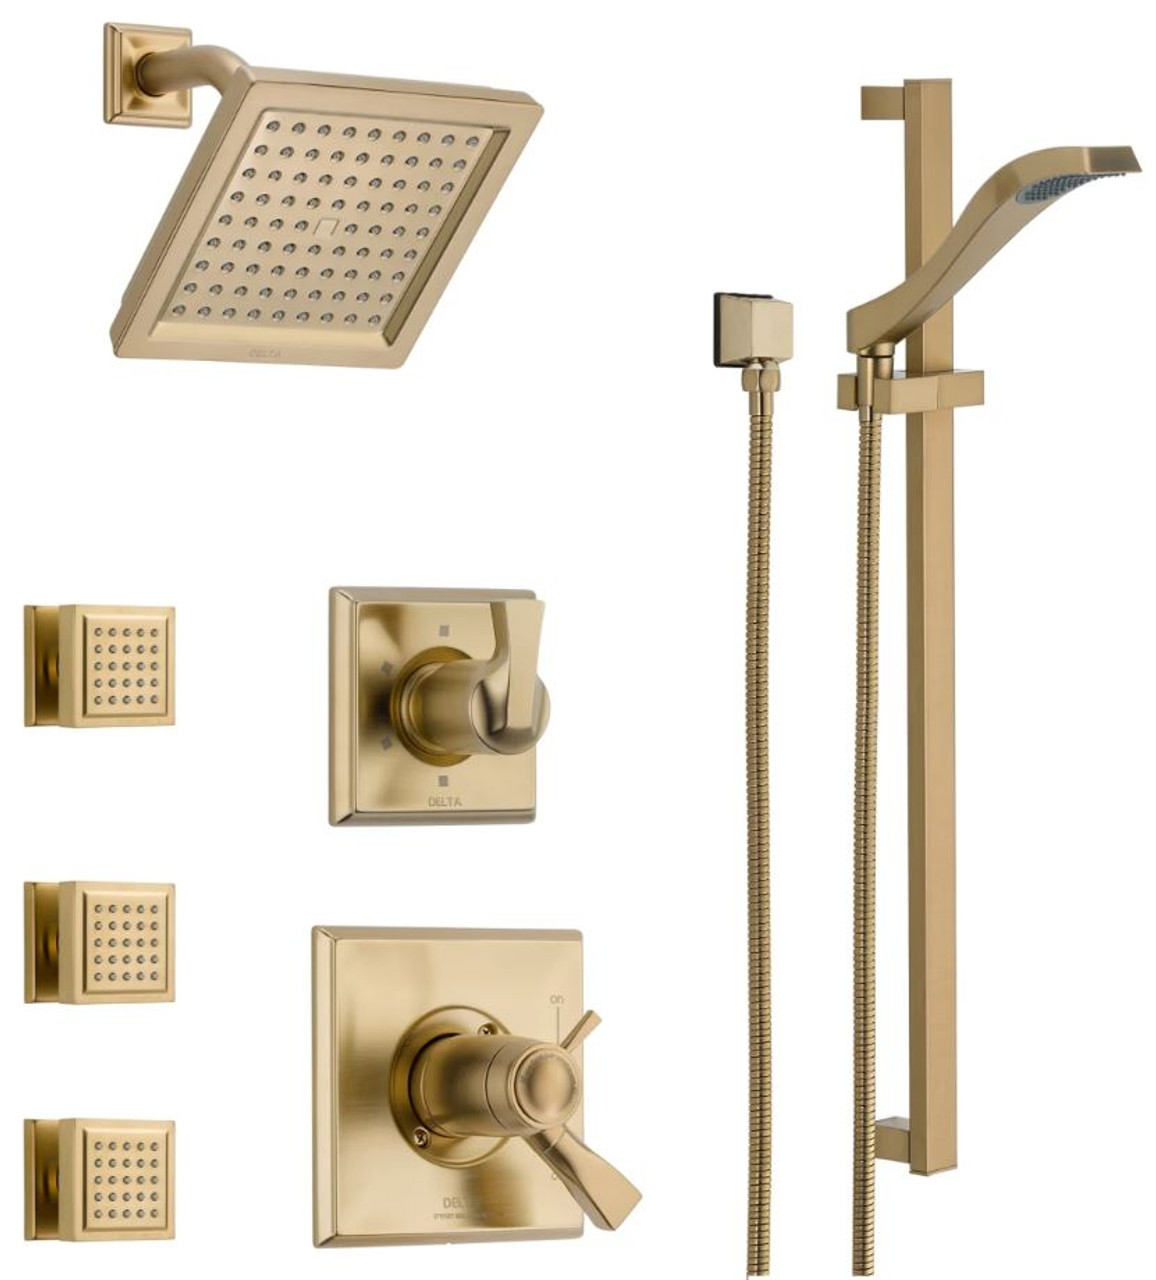 Delta Tempassure 17t Series Thermostatic Shower System With Integrated Volume Control Shower Head 3 Body Sprays And Hand Shower Includes Rough In Valves Royal Bath Place